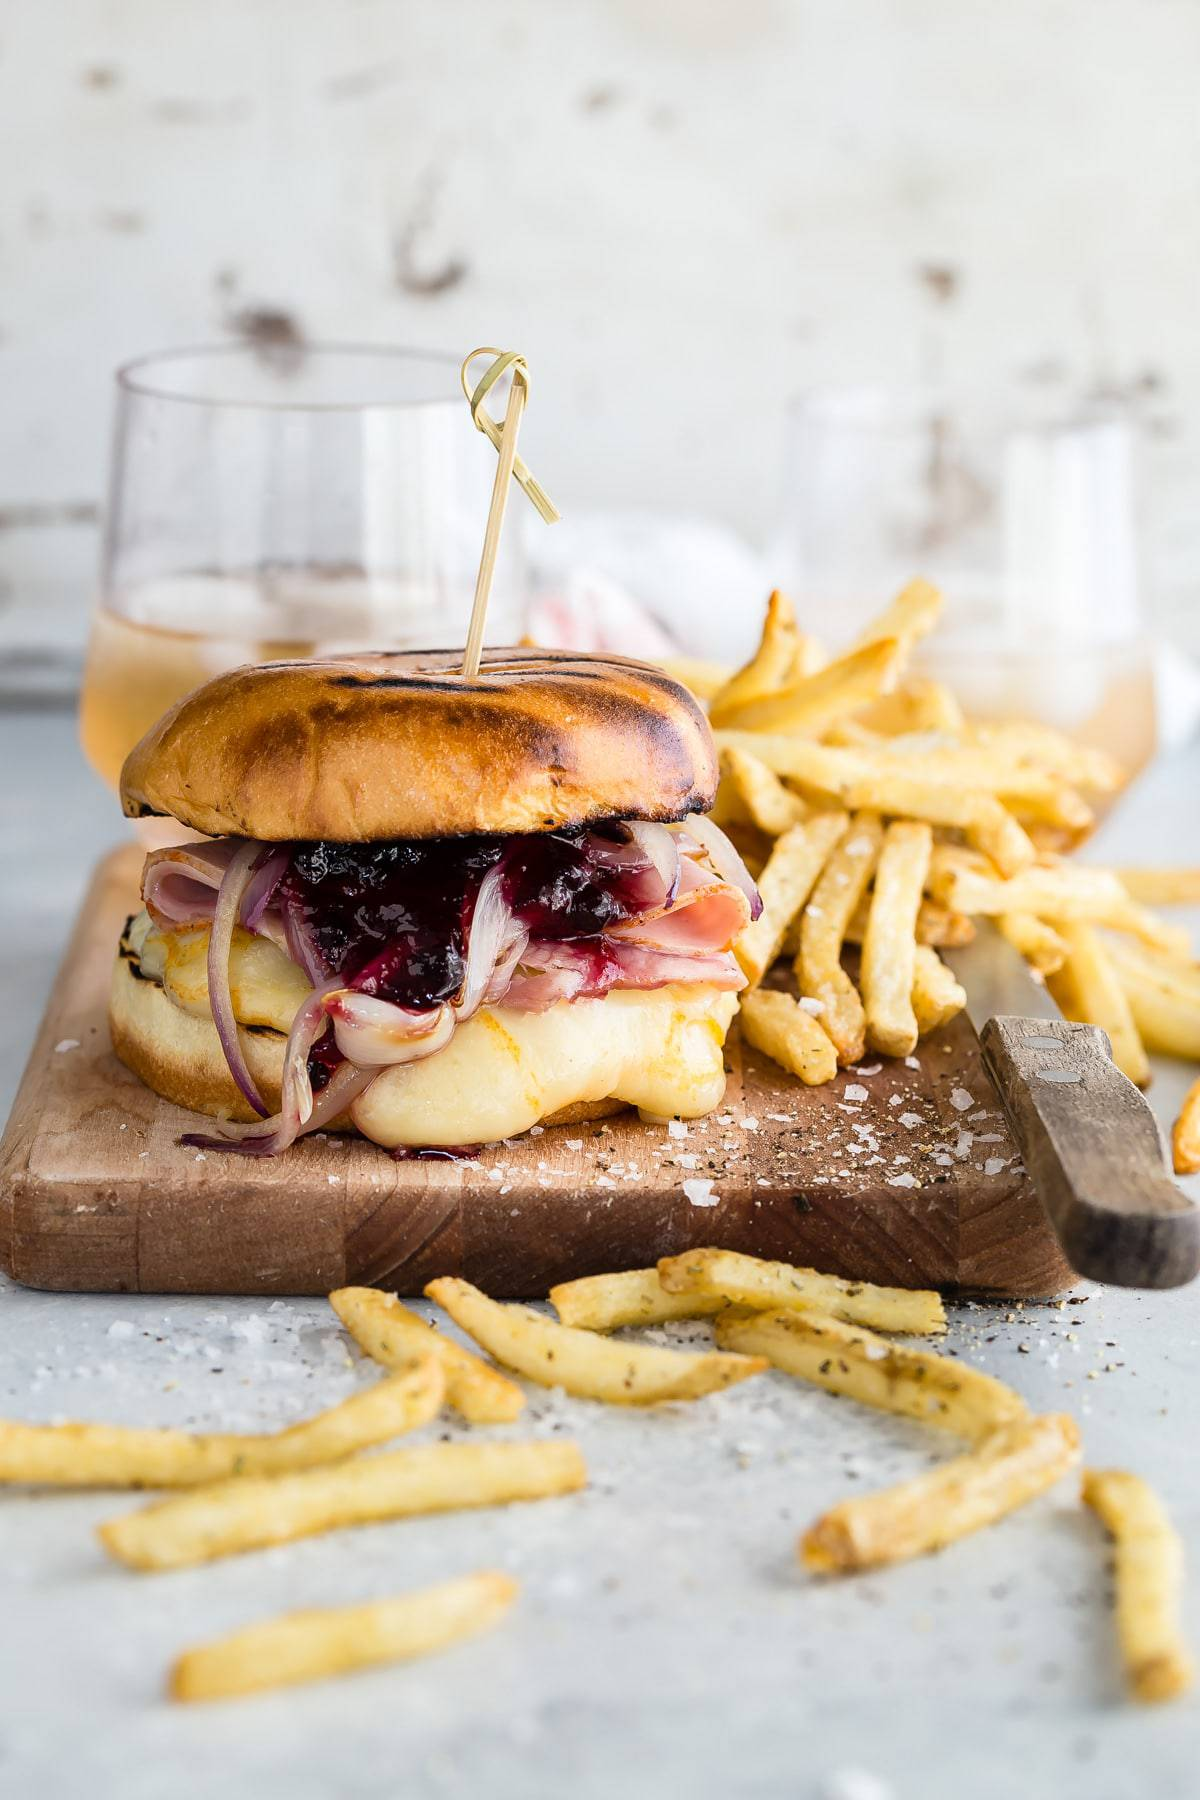 Monte Cristo Burger with Arla Muenster Sliced Cheese.